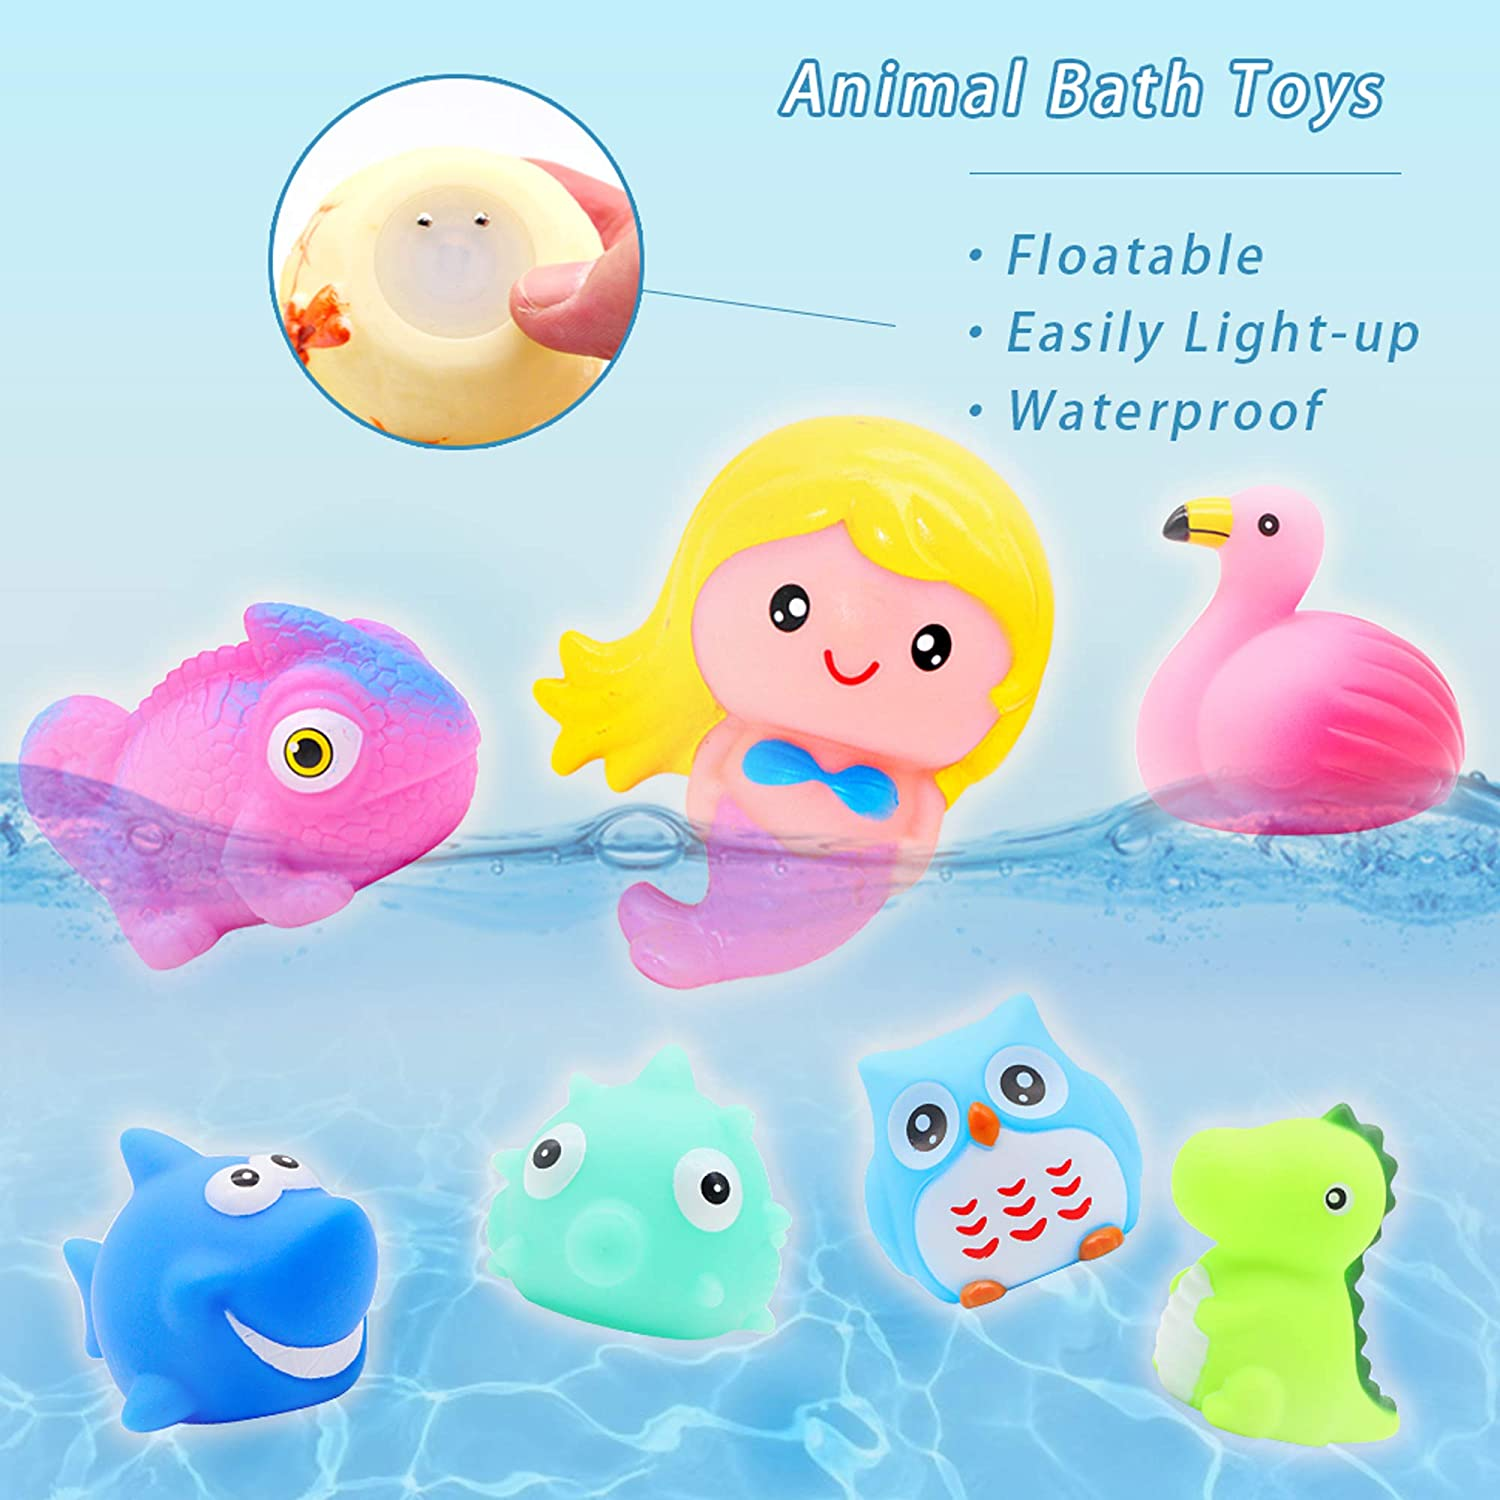 yoliyogo Animal Toy Bath/ Floating Toy with Auto/ Flashing Early Learning Toy Package with 8 Pcs Dinosaur Shark Flamingo Mermaid Etc Bathtub Shower Toy Gift for Kids/&Pets